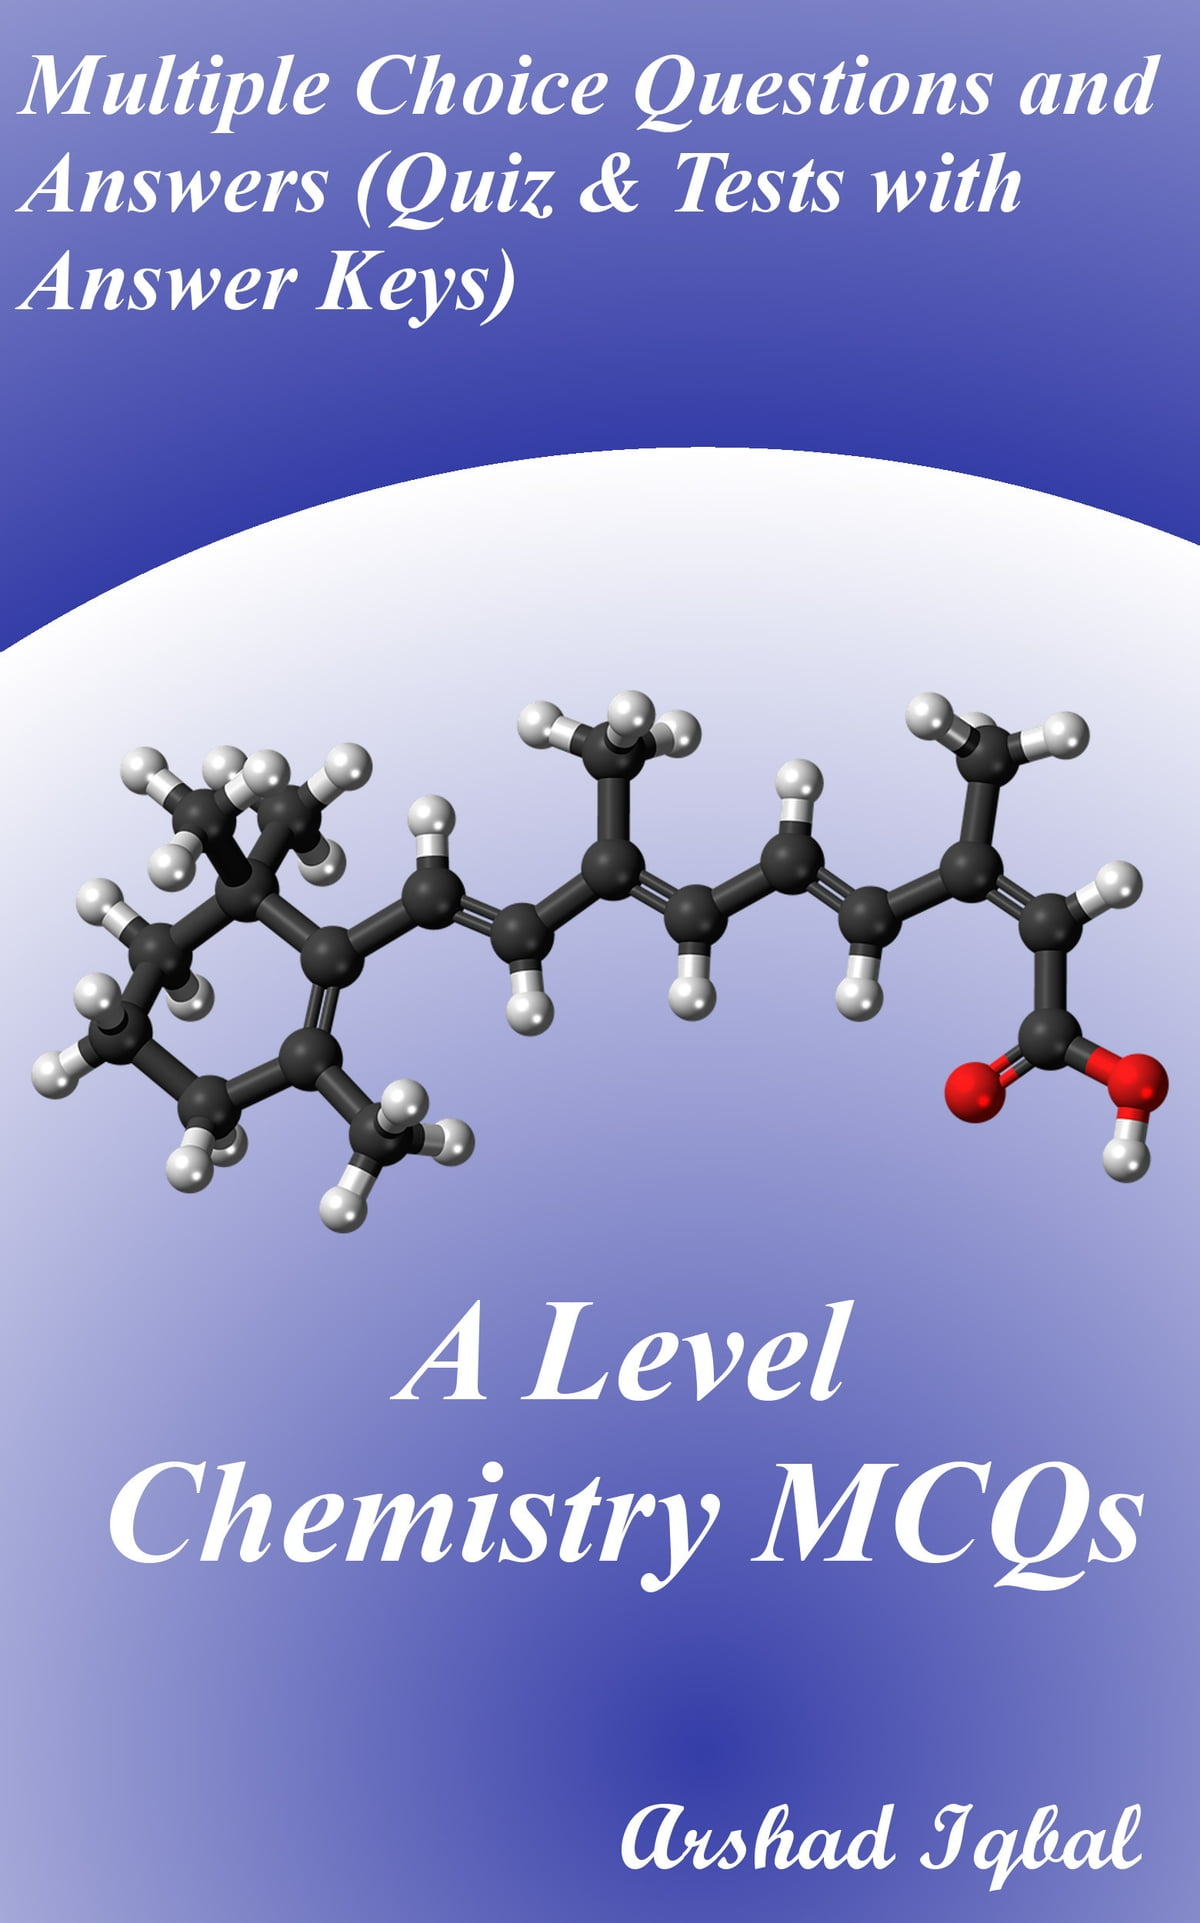 A Level Chemistry Mcqs Multiple Choice Questions And Answers Quiz Amp Tests With Answer Keys